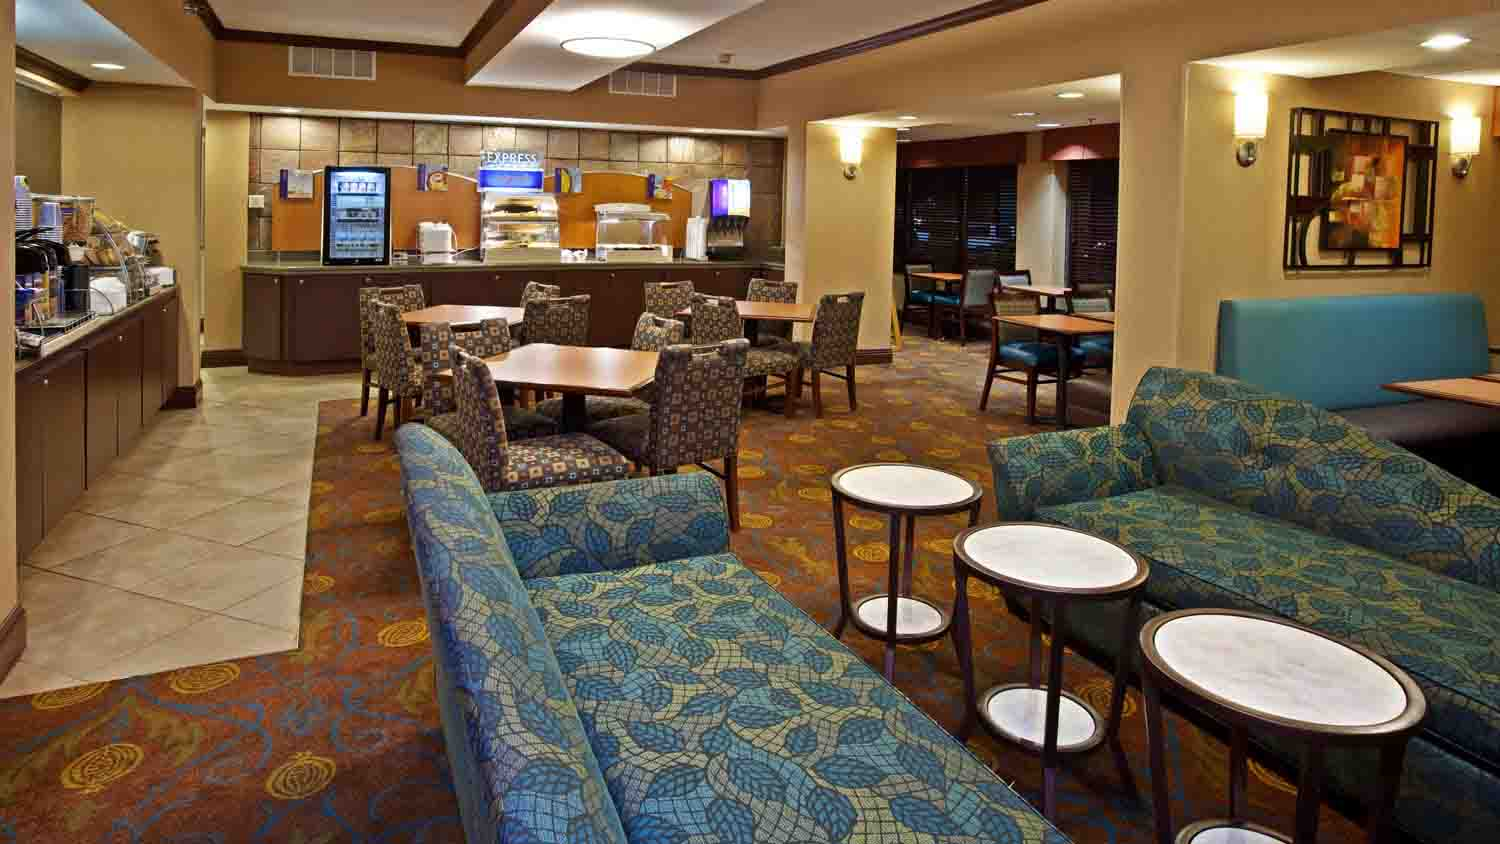 Holiday Inn Express Northwest - Park 100 2